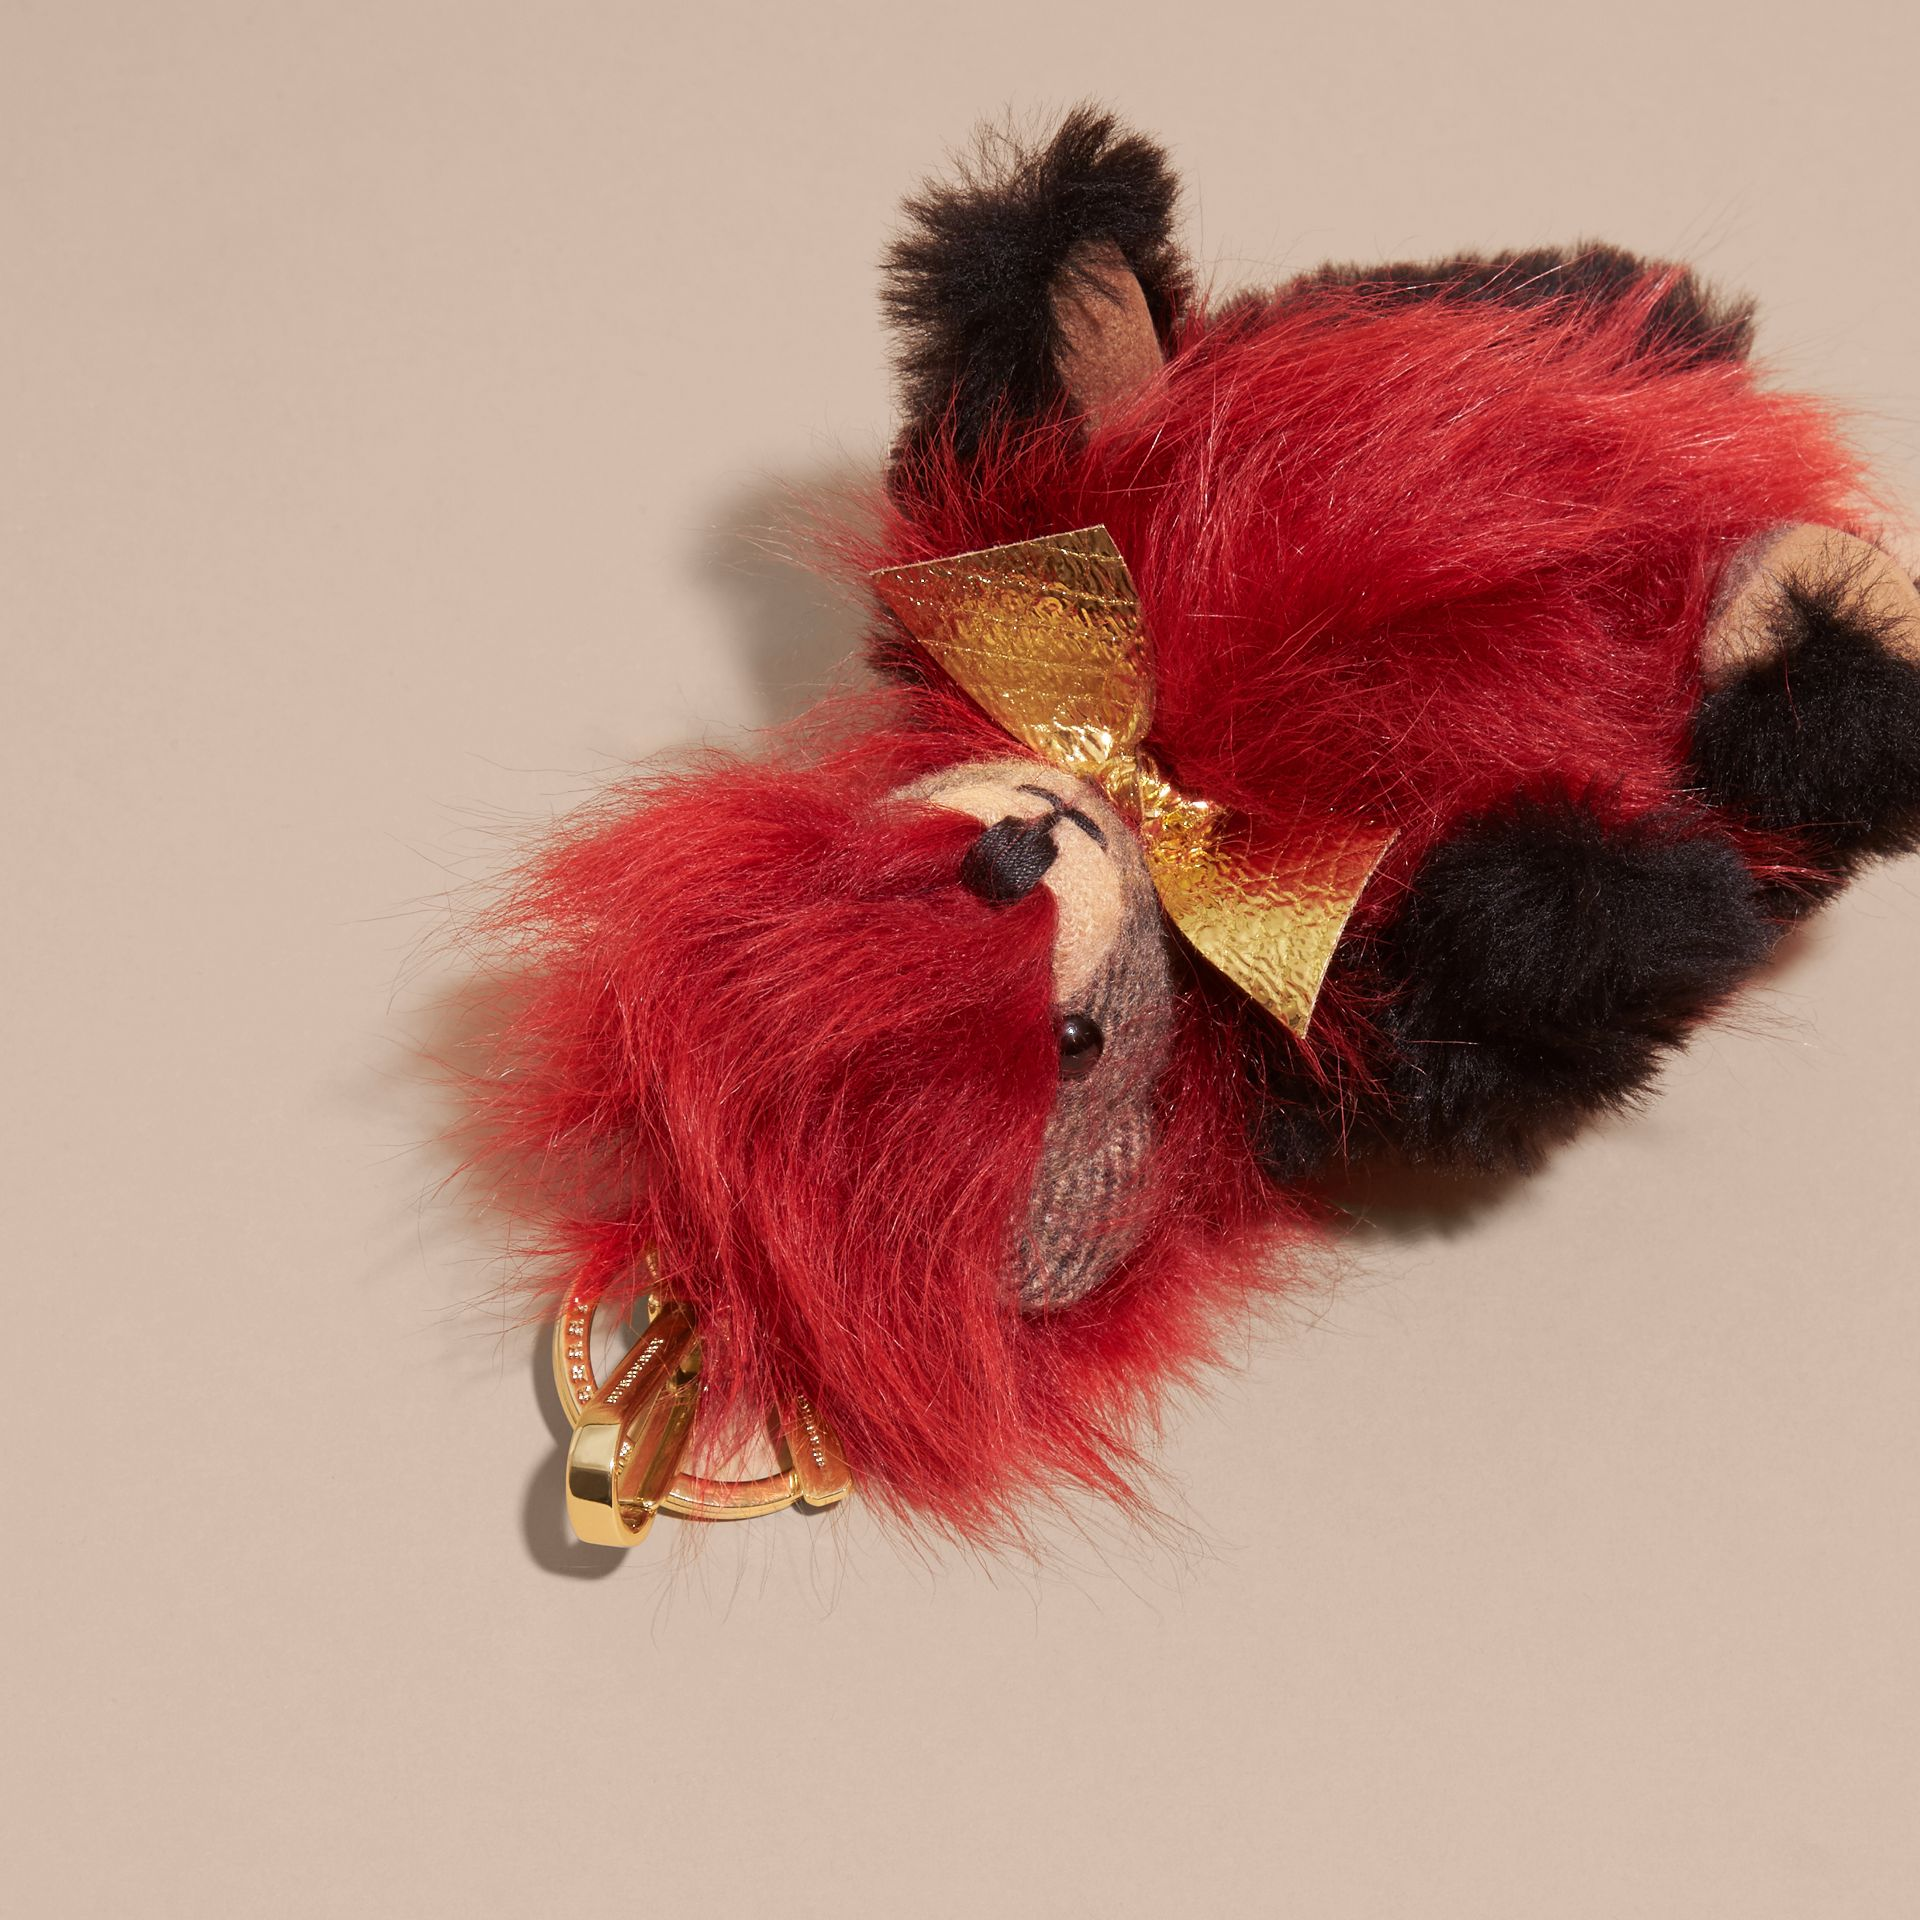 Thomas Bear Pom-Pom Charm in Check Cashmere in Parade Red | Burberry - gallery image 6